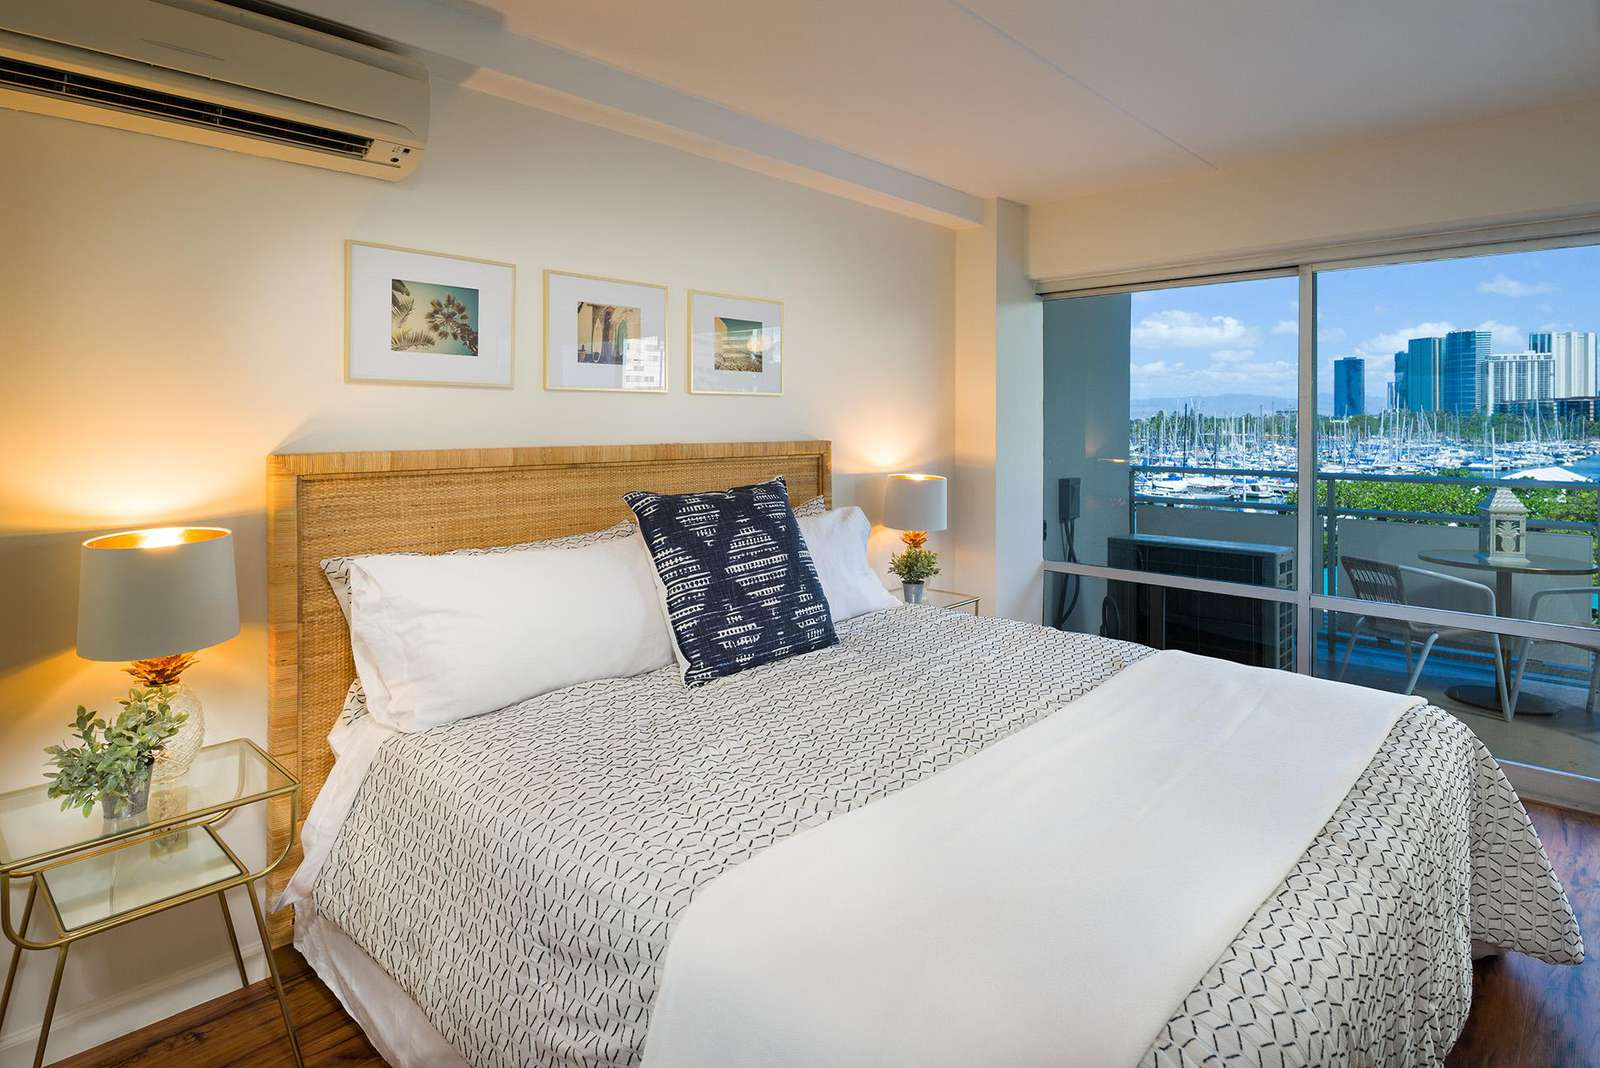 Ocean views right from the comfort of your King size bed!